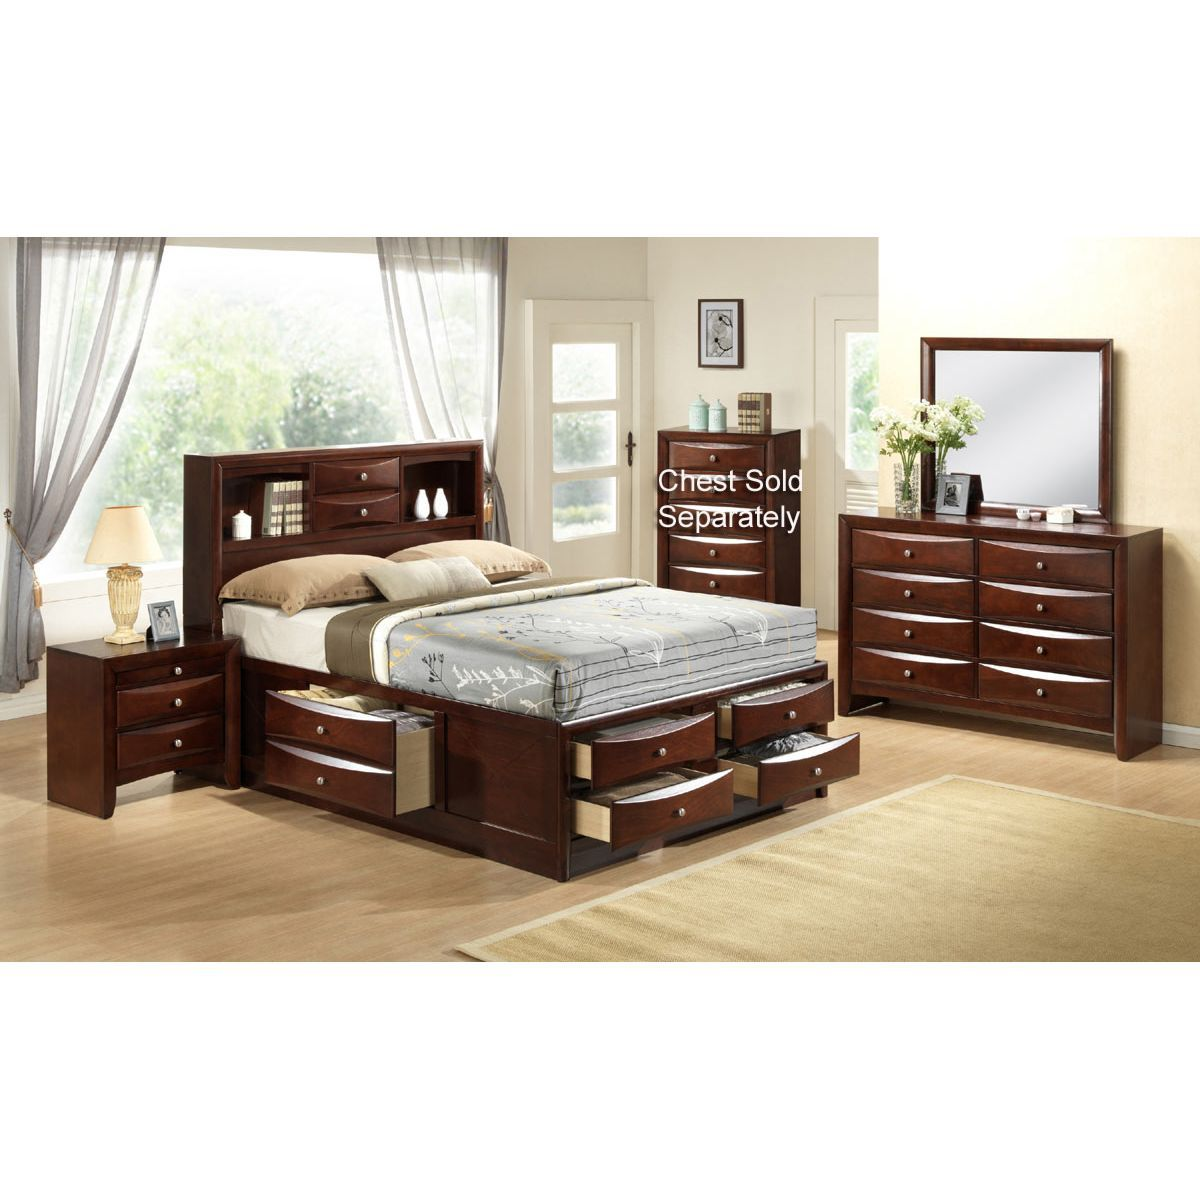 Emily 7Piece Queen Bedroom Set RC Willey Home Furnishings